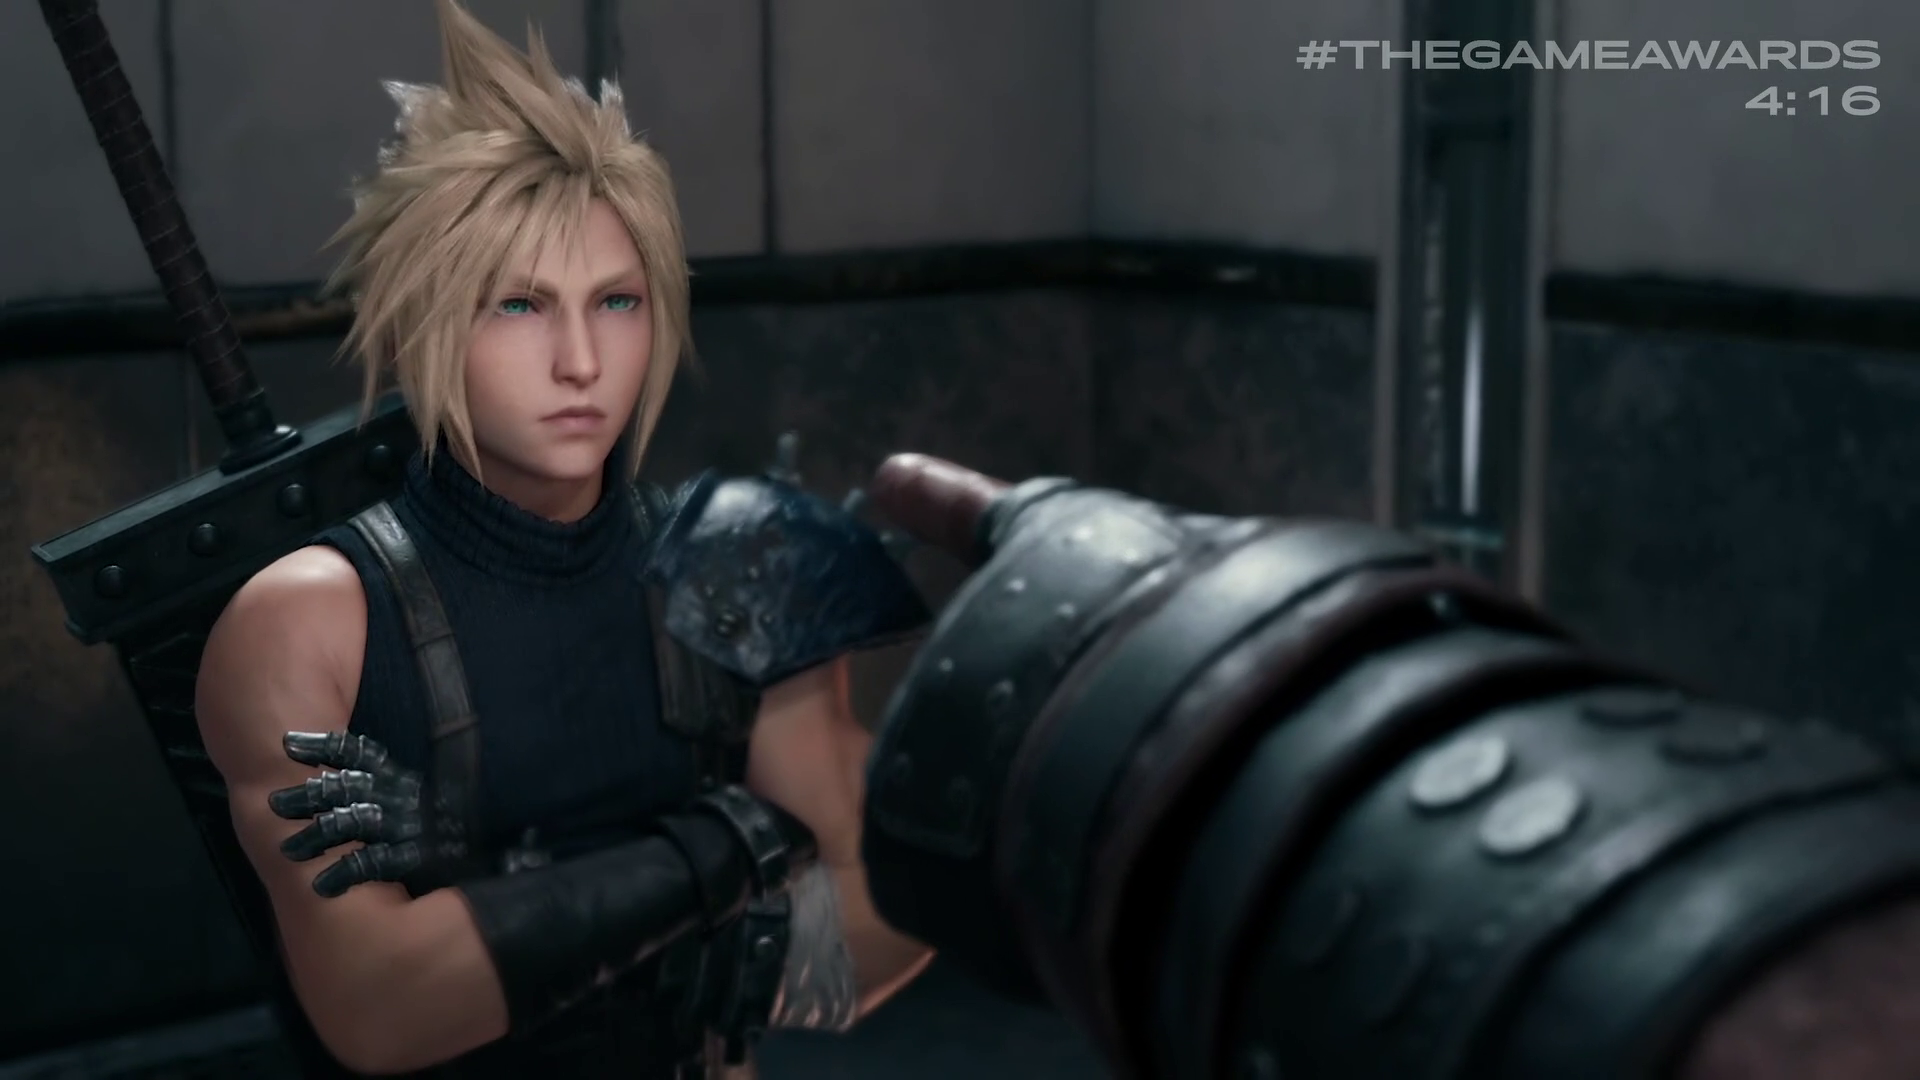 Cloud Strife with someone pointing at him in Final Fantasy 7 Remake